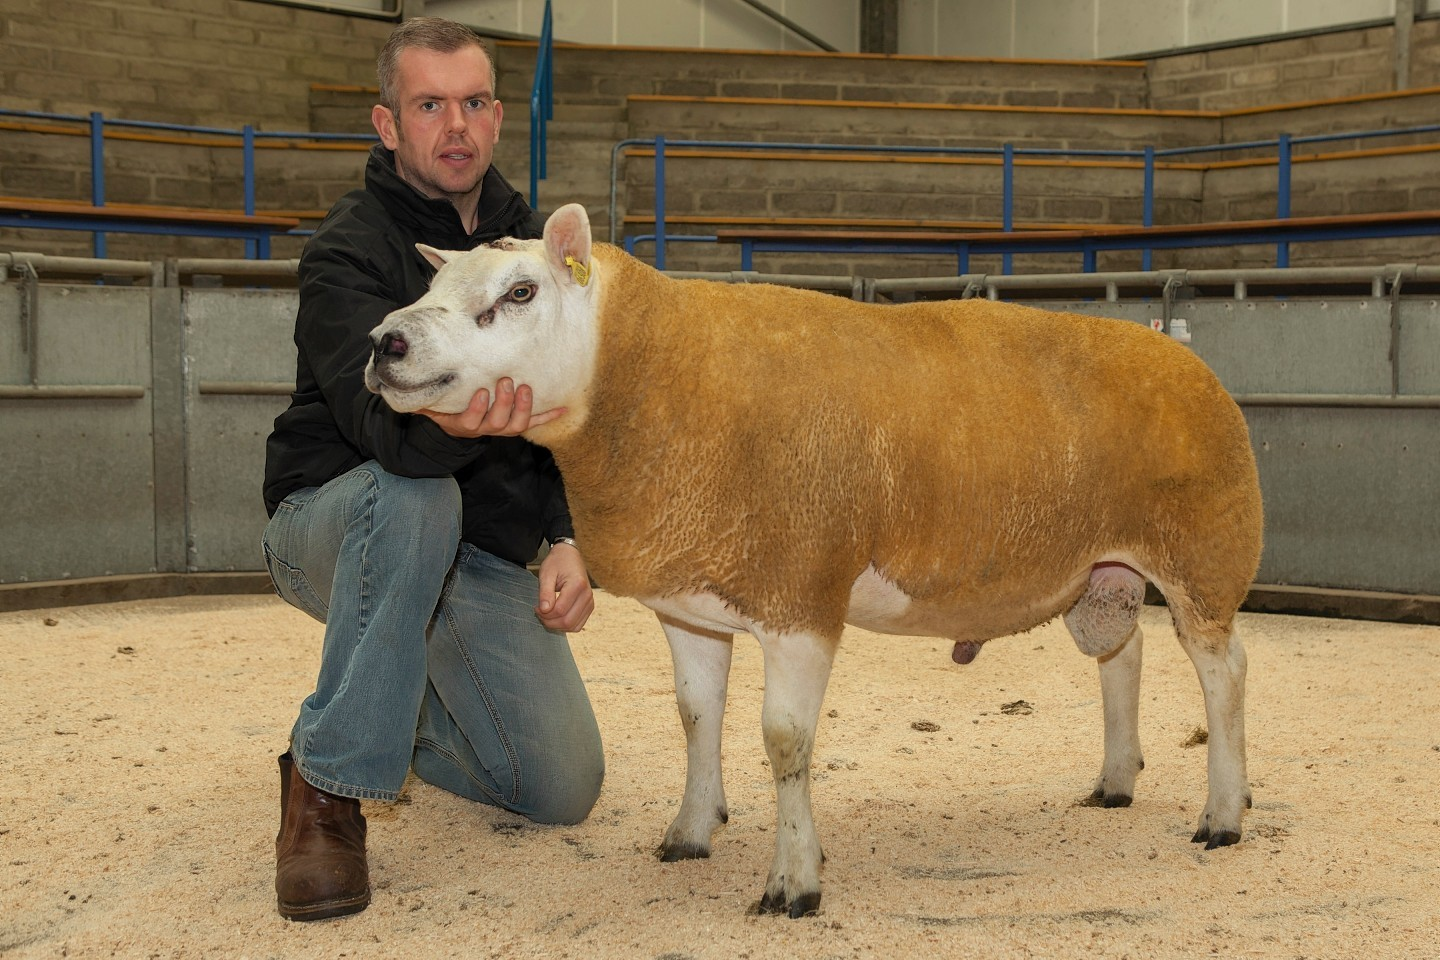 The Texel champion from last year's sale